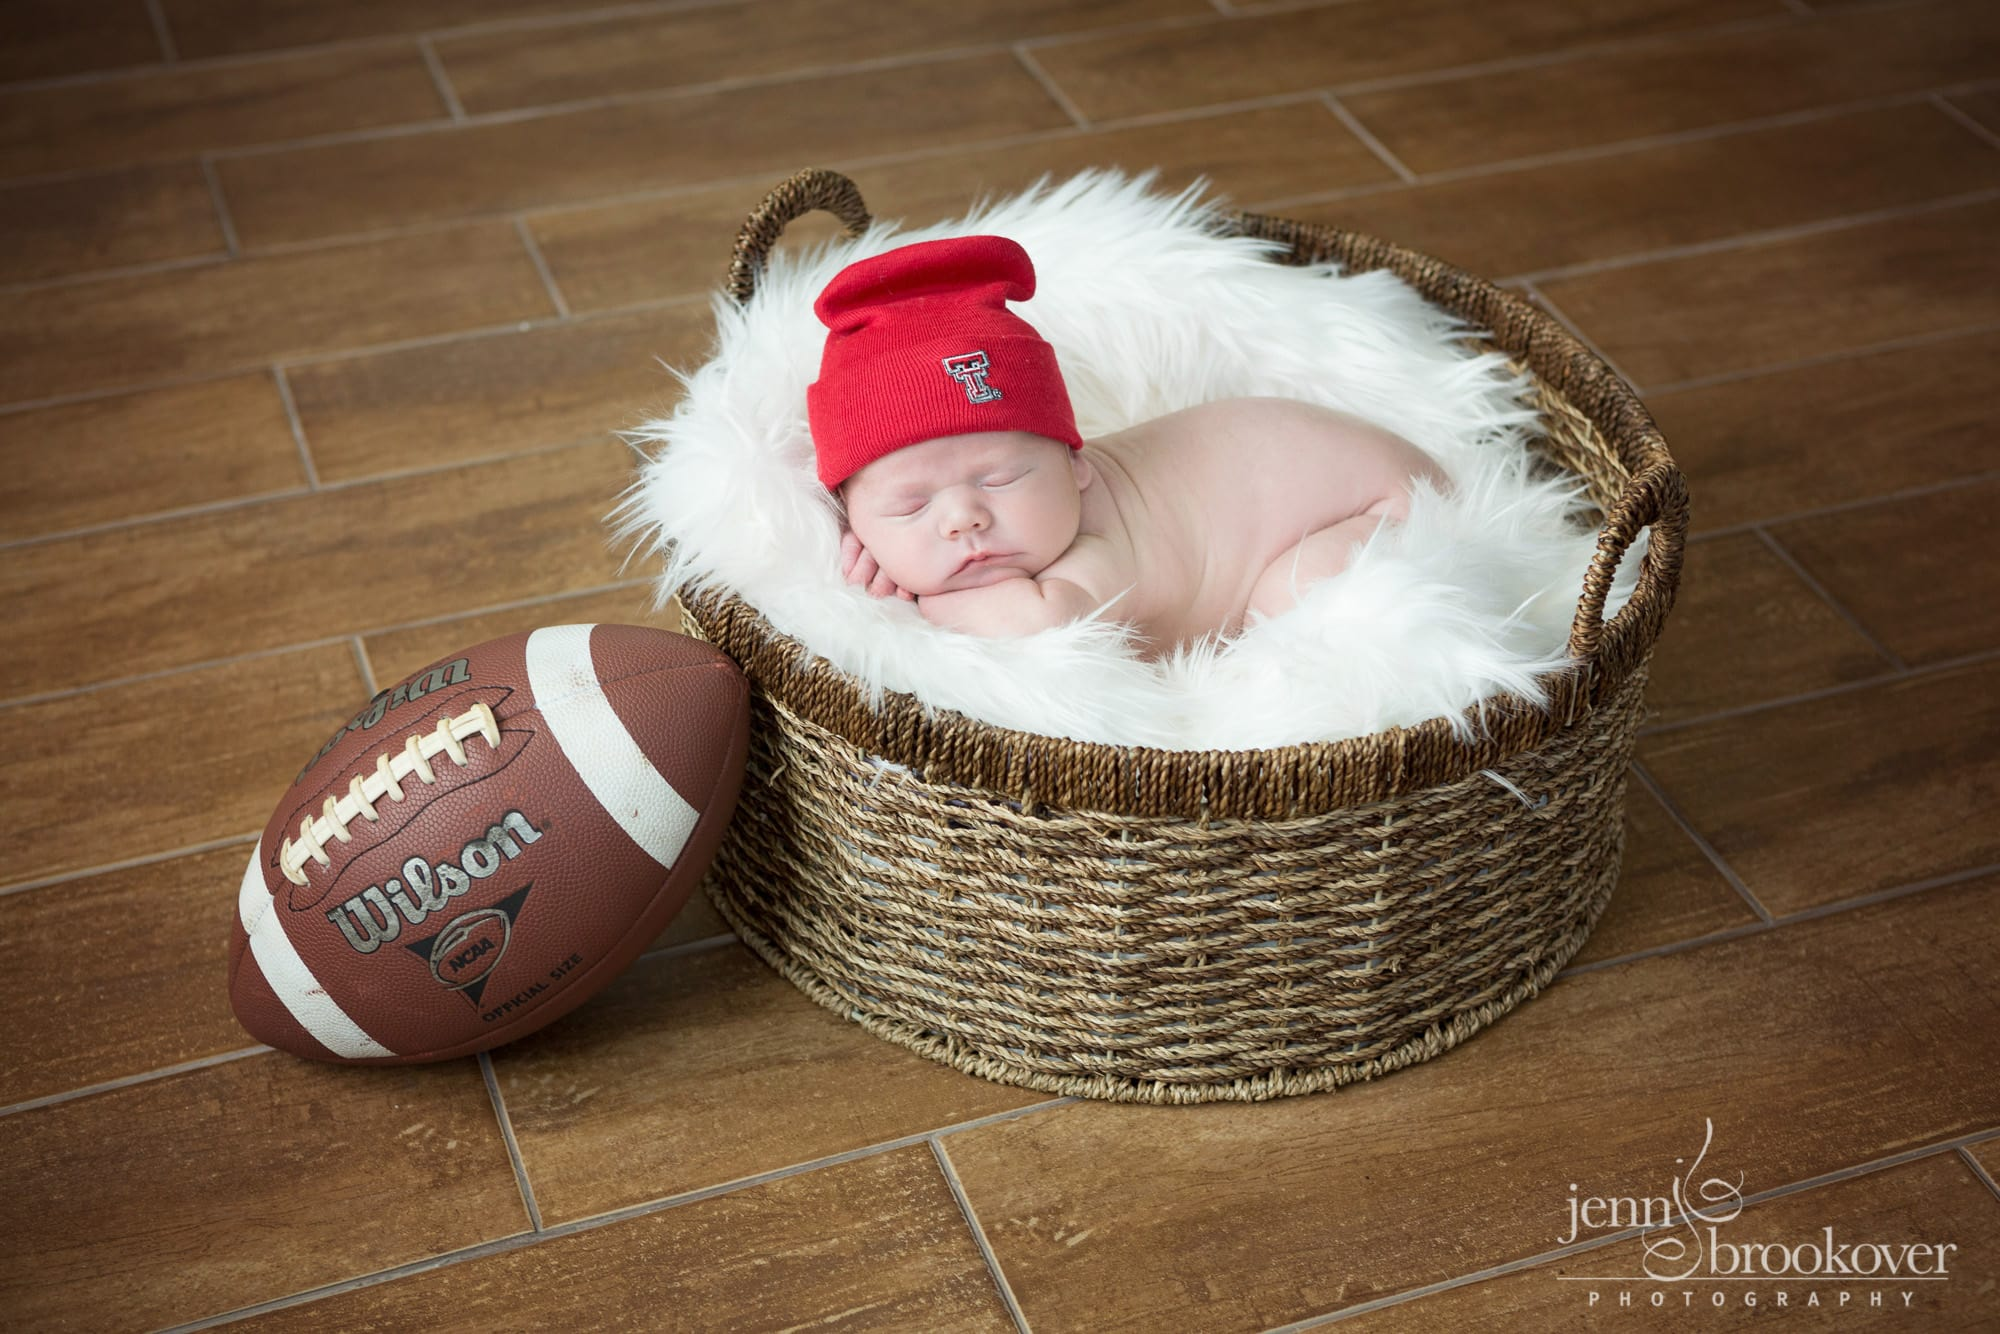 newborn boy in Texas Tech gear with football during photo session